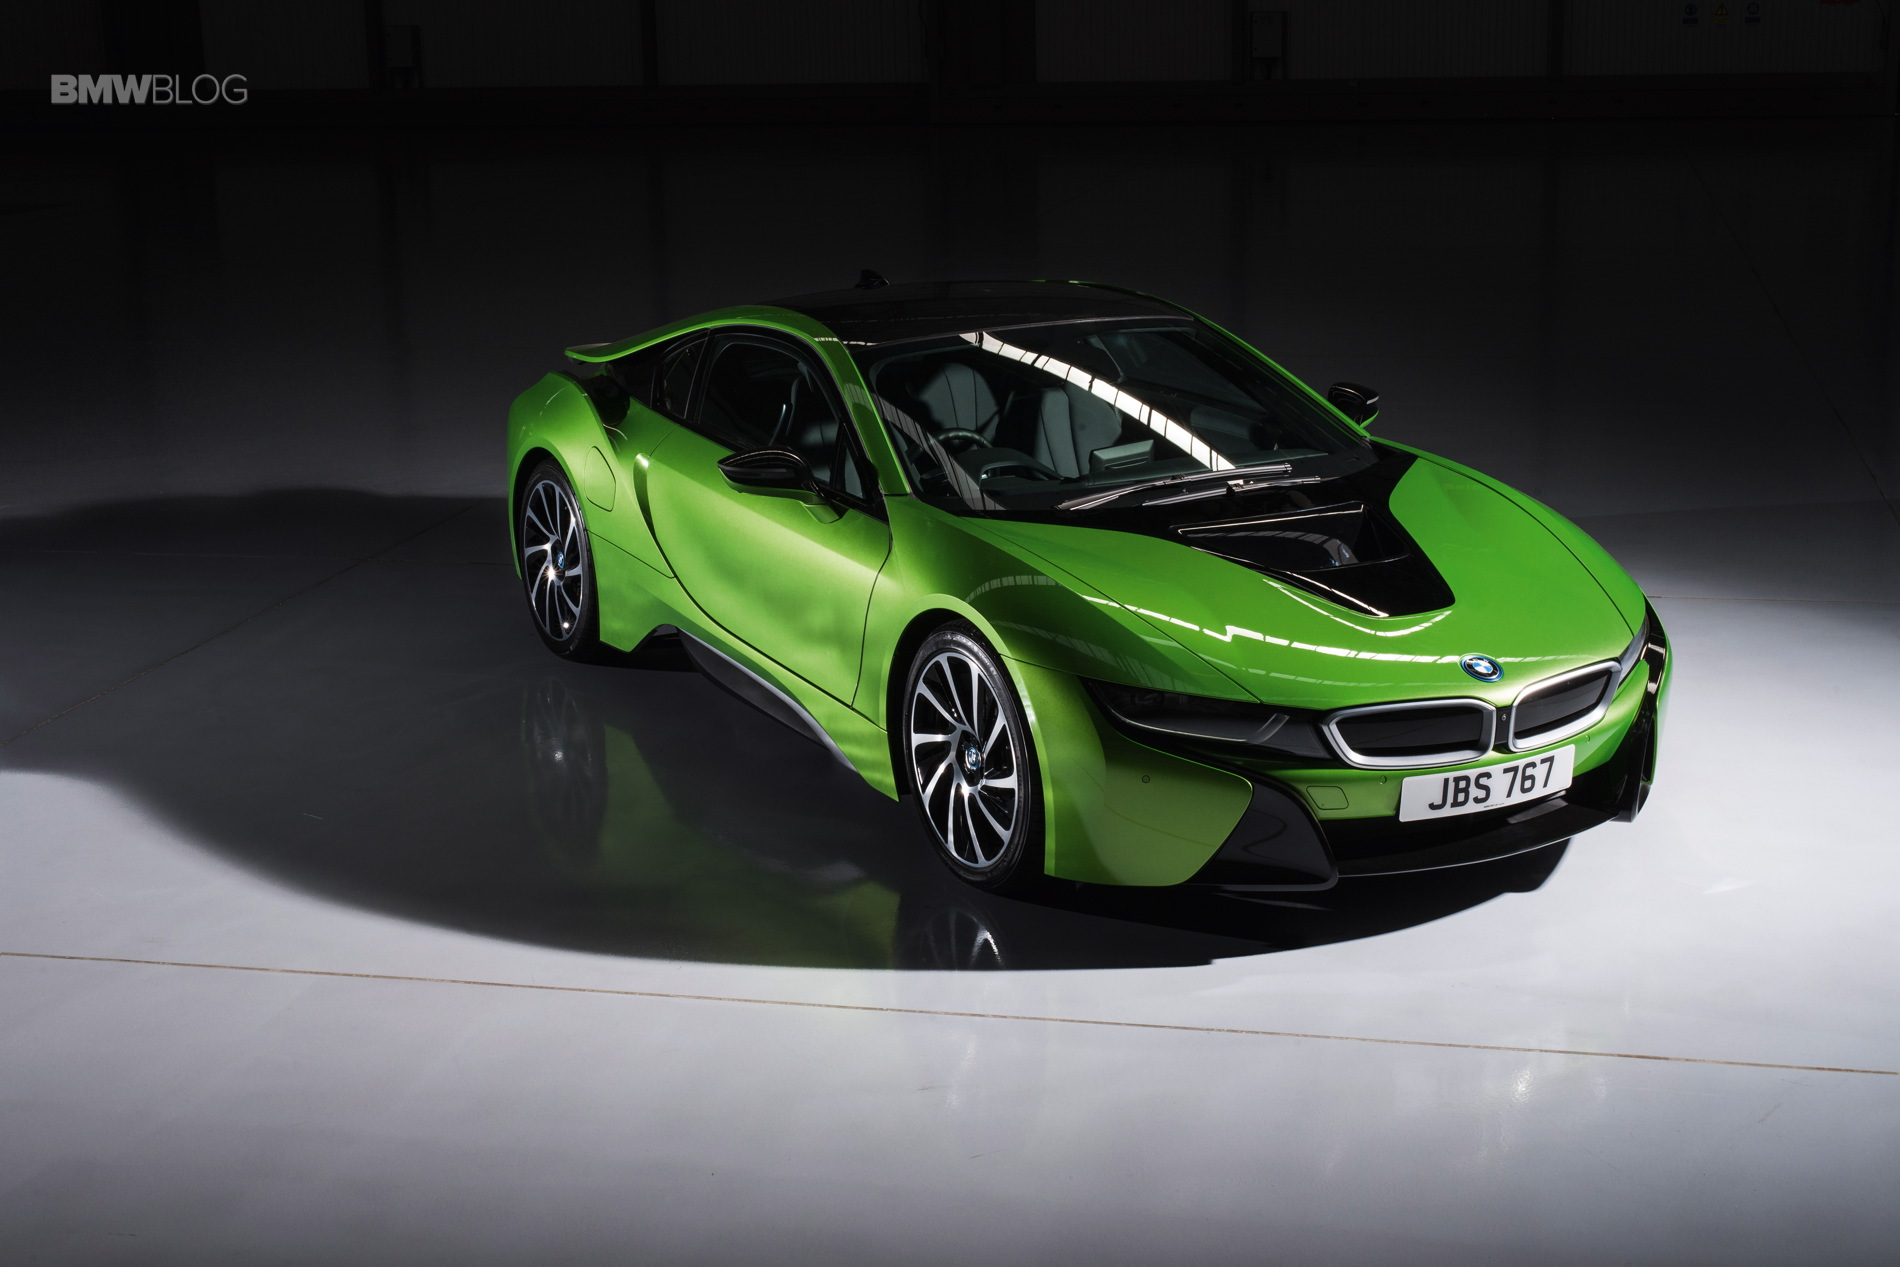 Video: Is the BMW i8 a Supercar or a City Car?